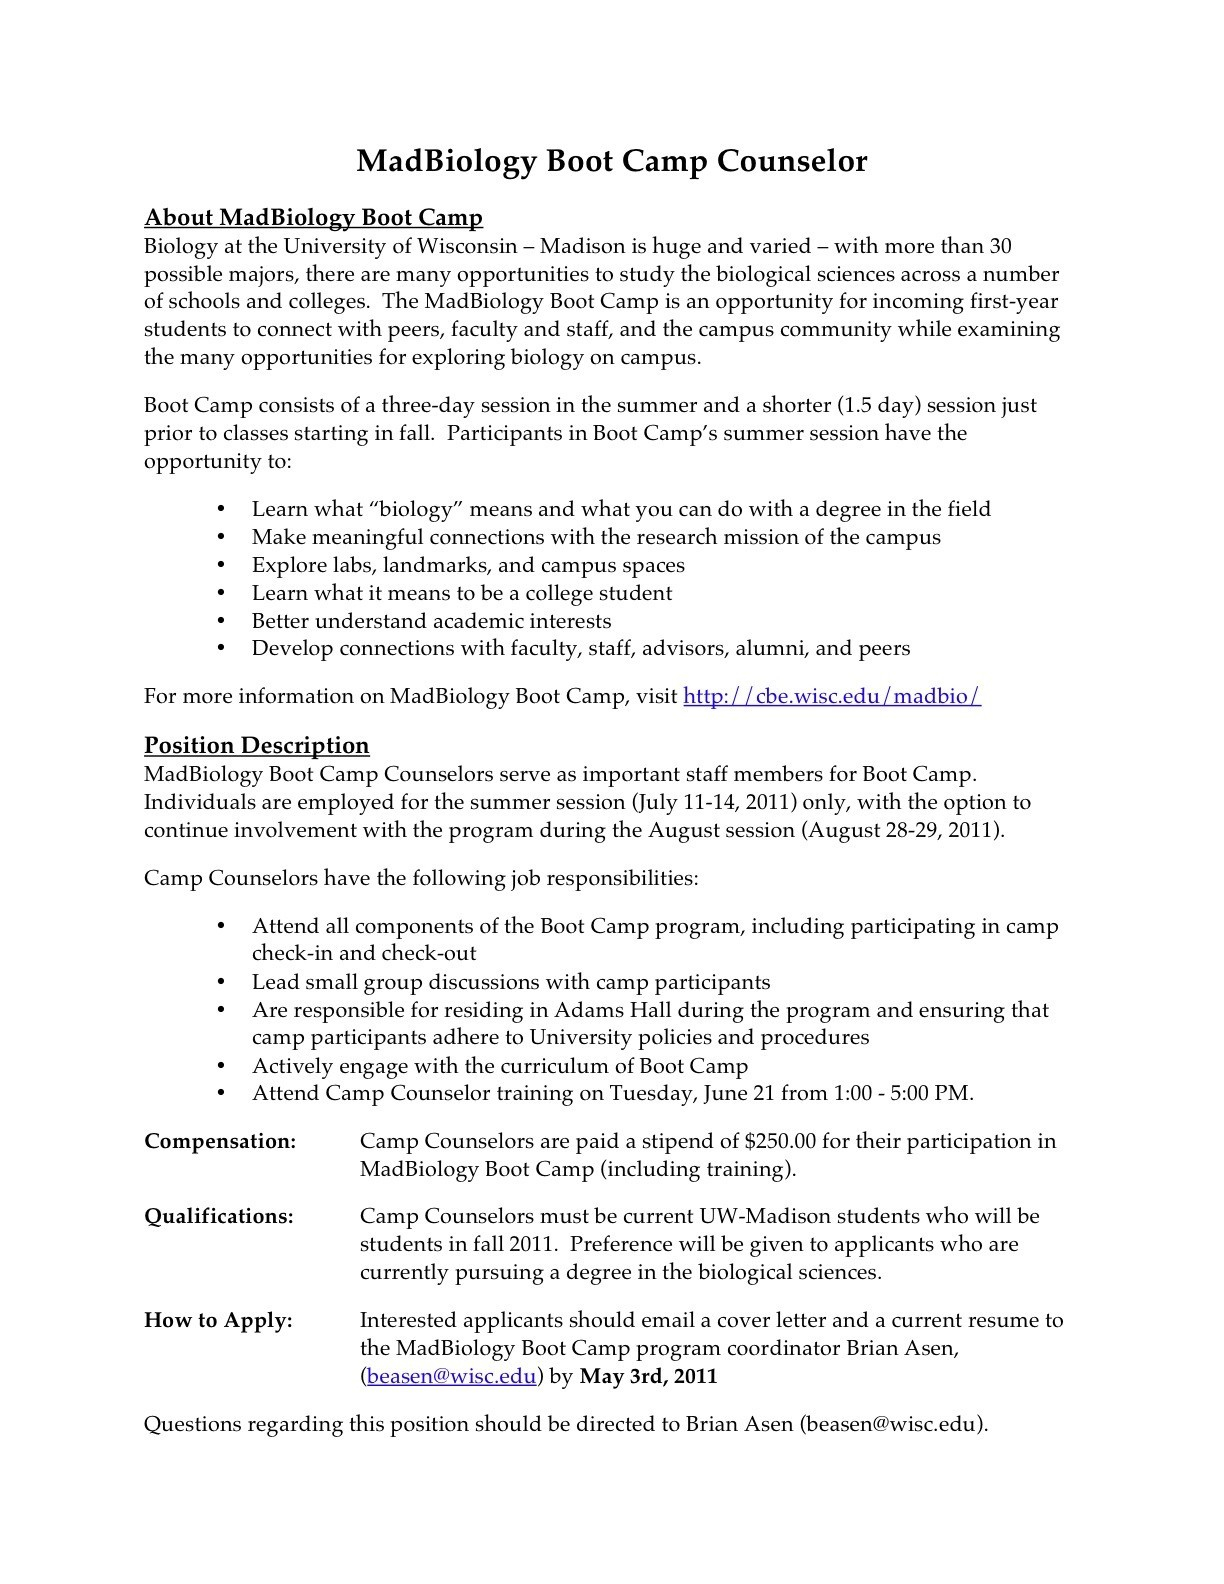 Camp Counselor Responsibilities Resume - Camp Counselor Resume Inspirational Resume Examples for Youth